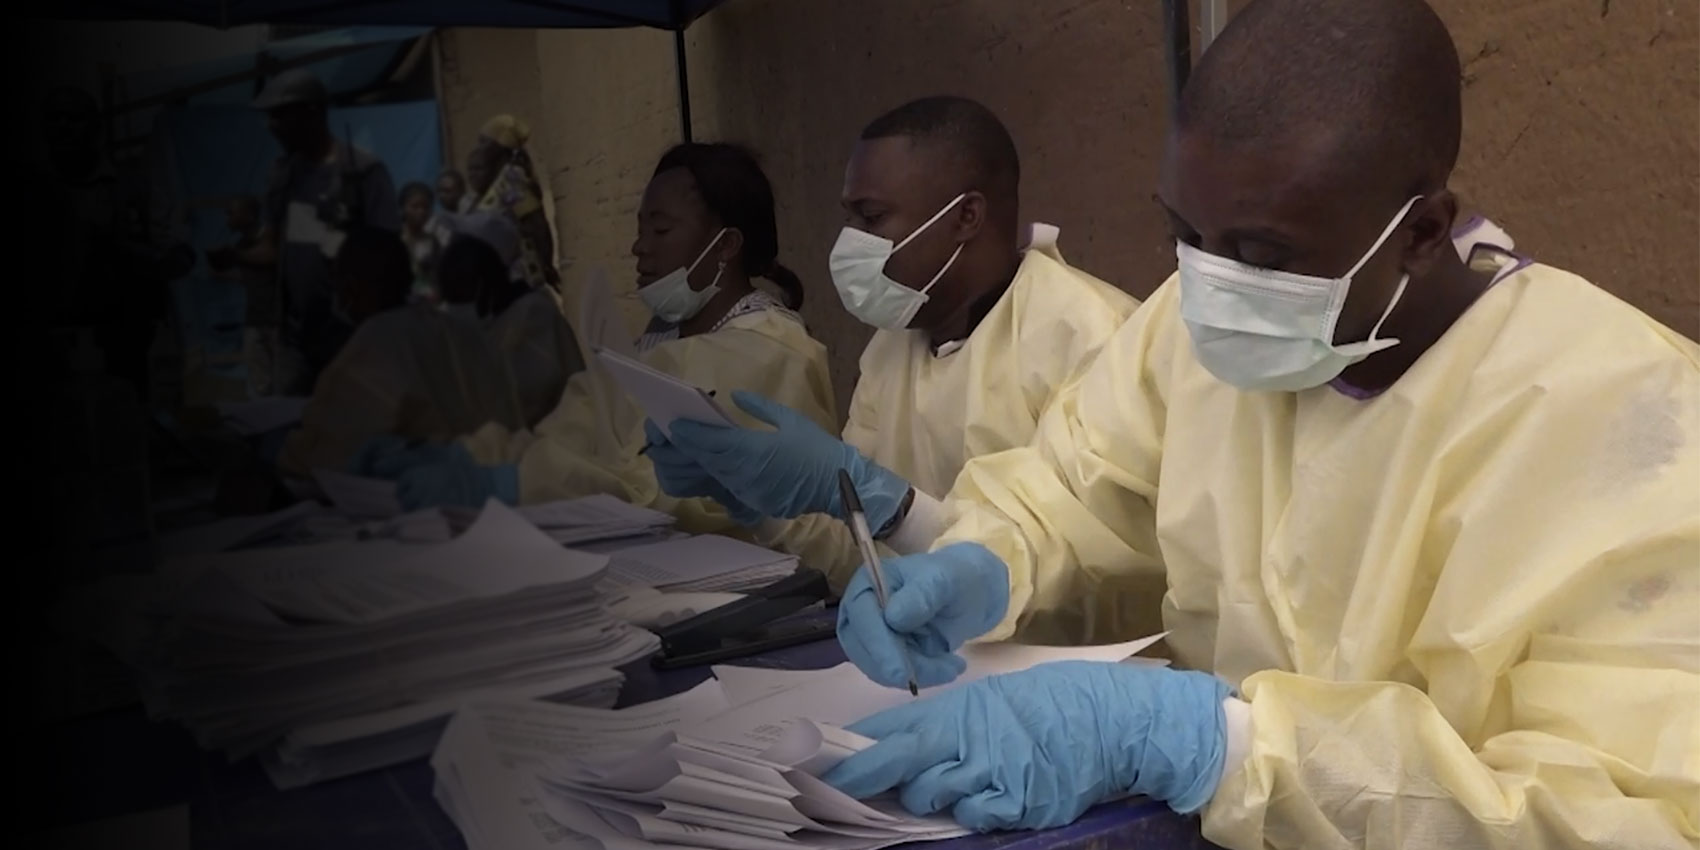 Photo taken from B-roll Ebola Vaccination in DR Congo (WHO footage)